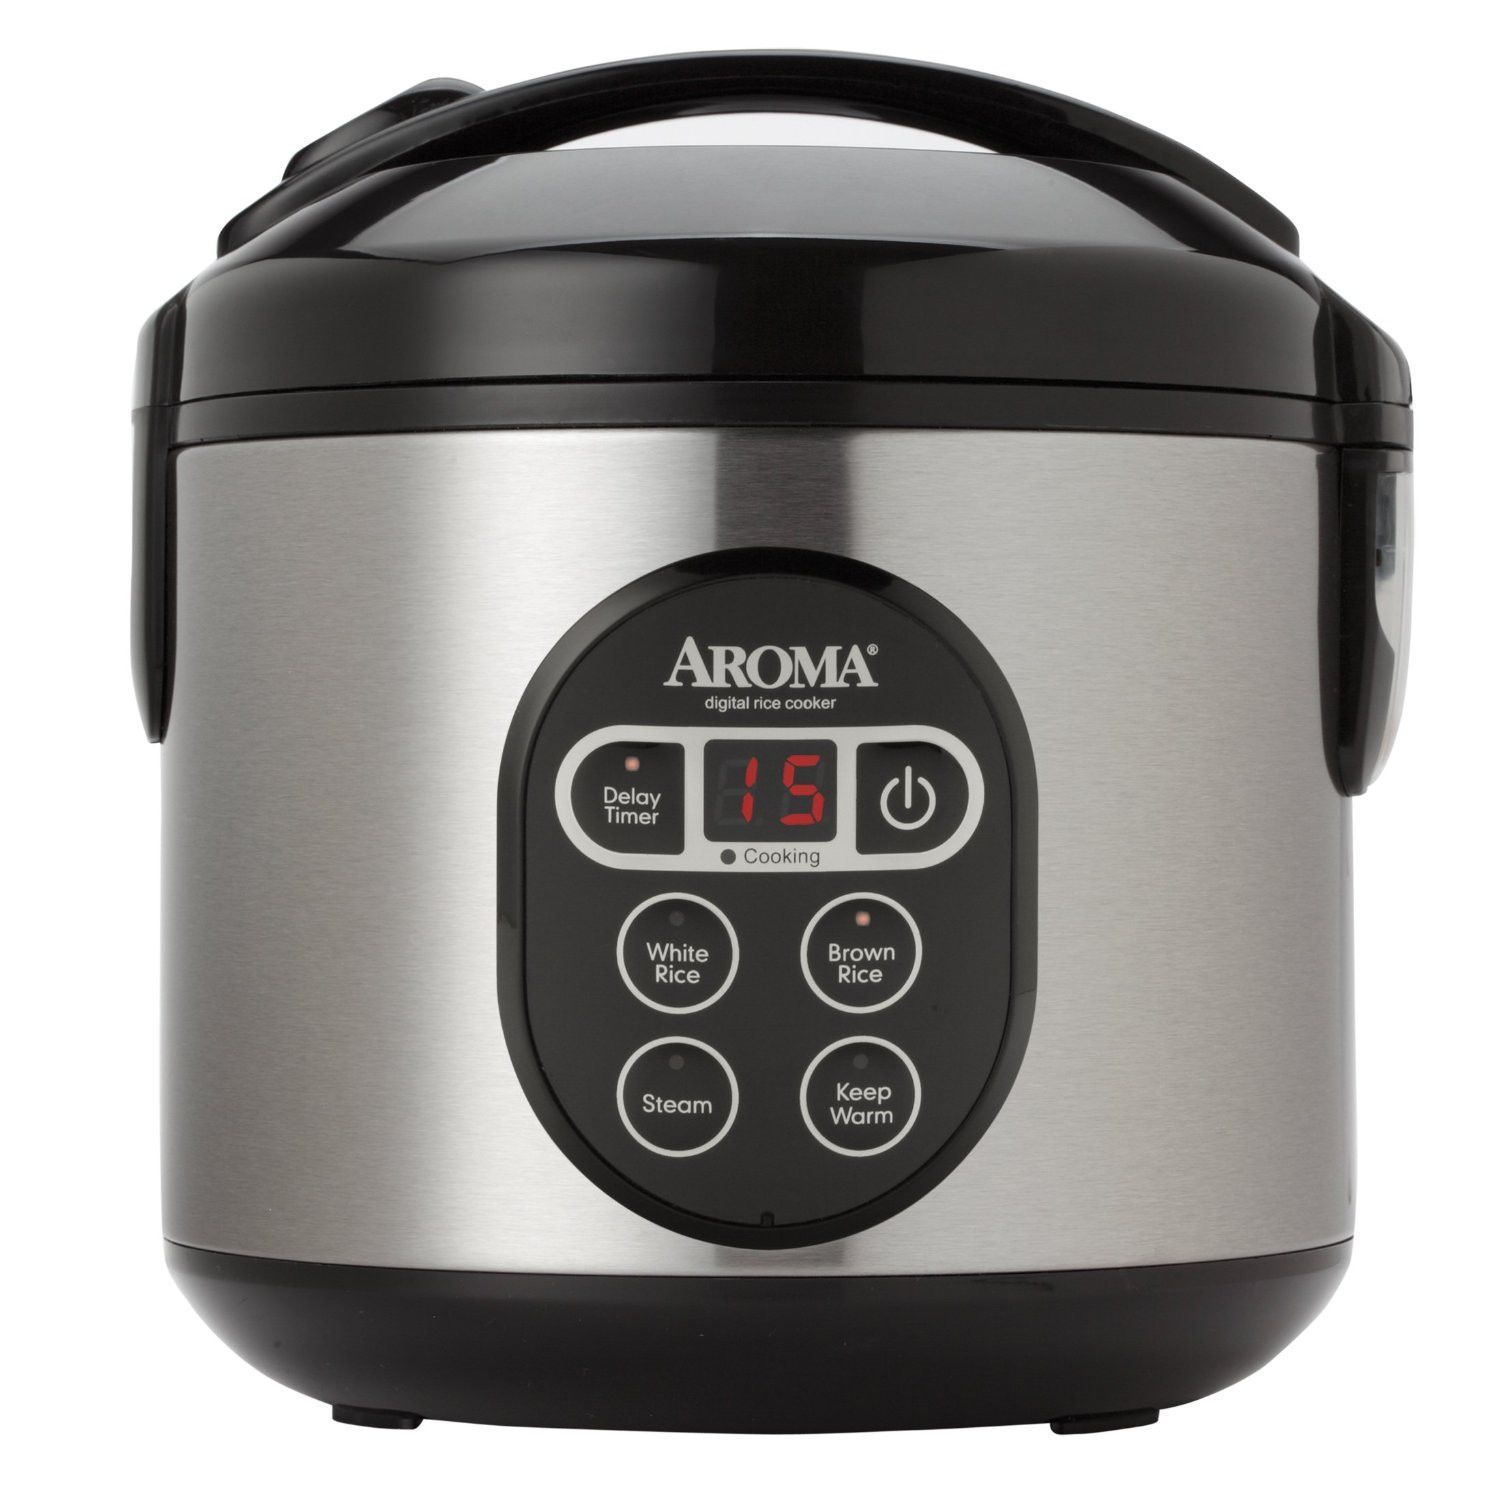 aroma housewares arc 914sbd digital cool touch rice cooker and food steamer with stainless steel exterior silver  kitchen applianceskitchen     aroma housewares arc 914sbd digital cool touch rice cooker and      rh   pinterest com